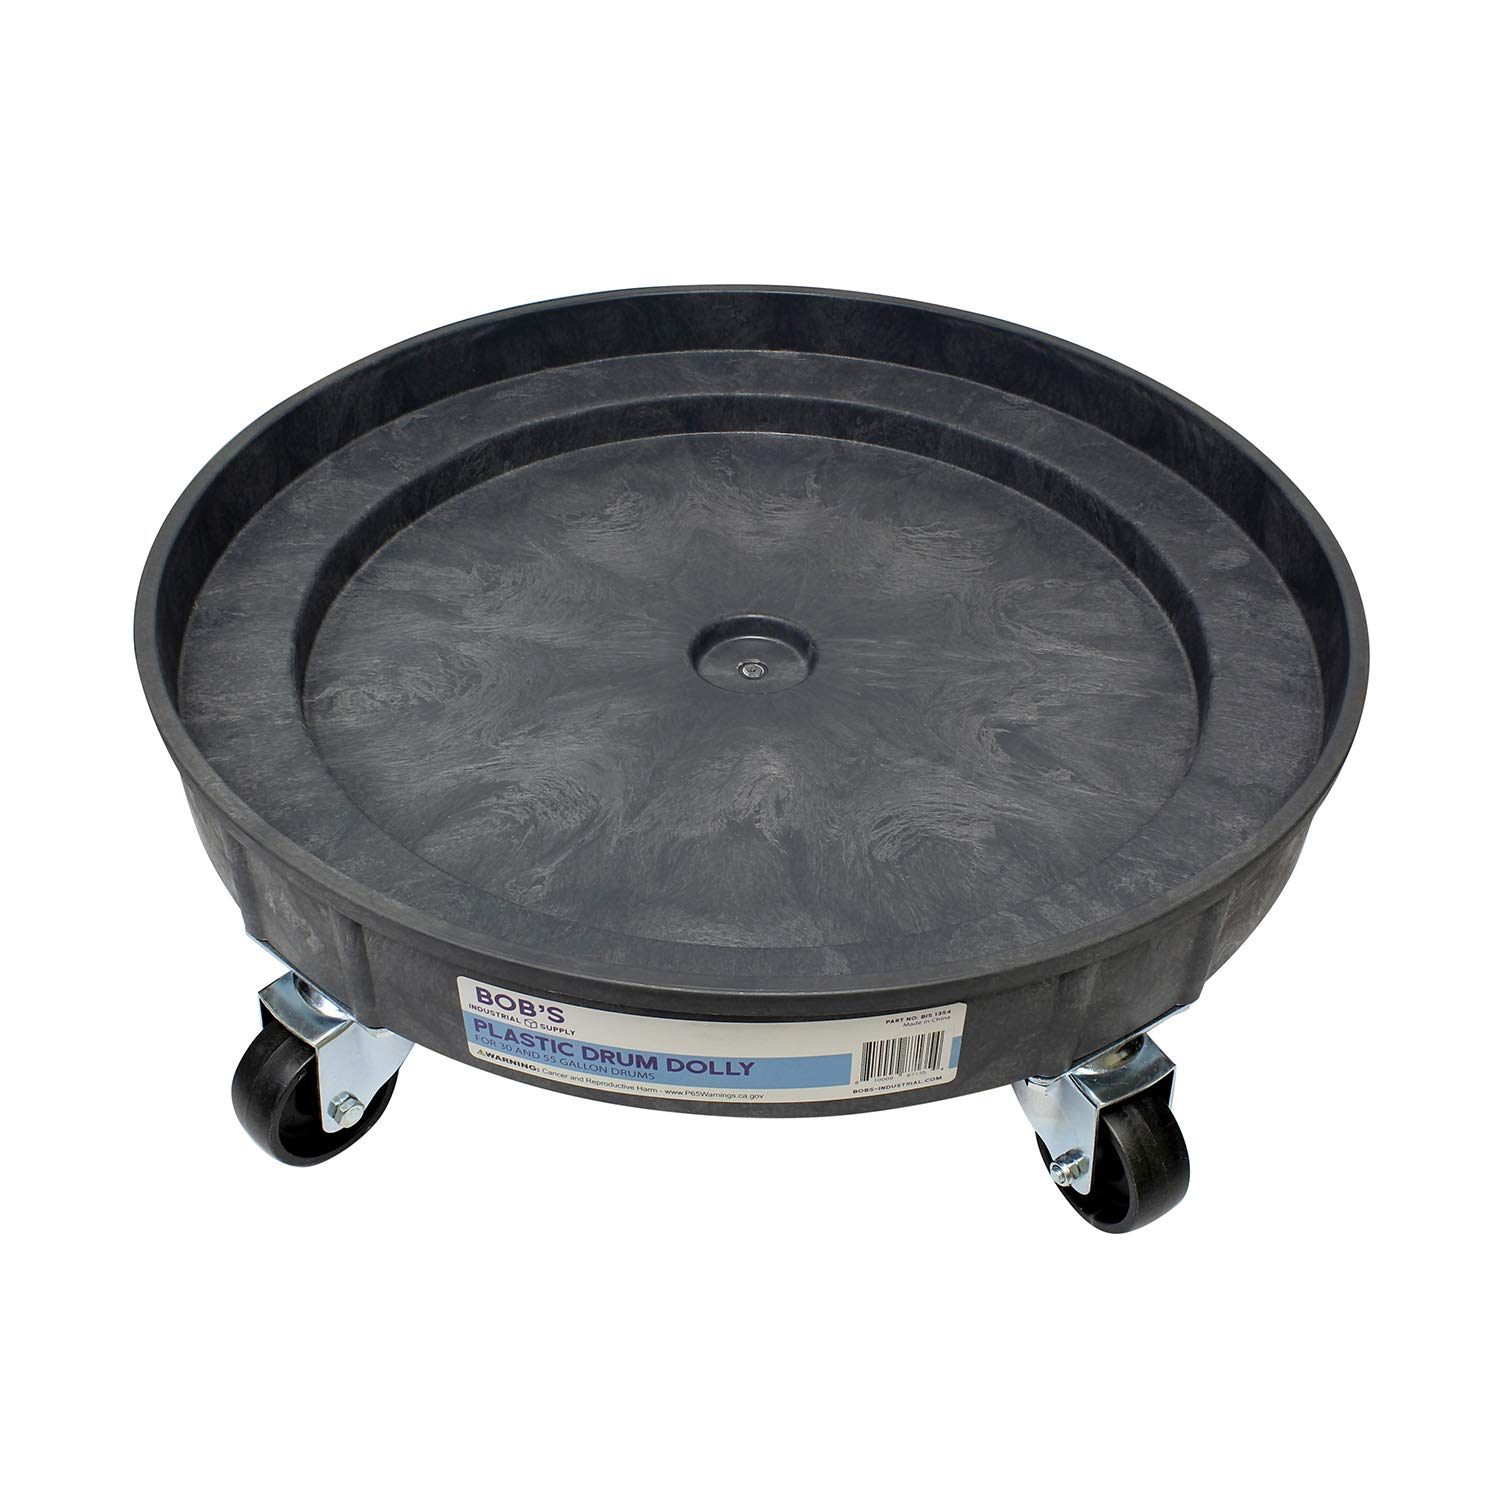 BISupply | Plastic 30 55 Gal Drum Dolly Barrel Cart Barrel Dolly for 55 Gallon Drum Dolly 55 Gallon 30 Gallon Drum Dolly